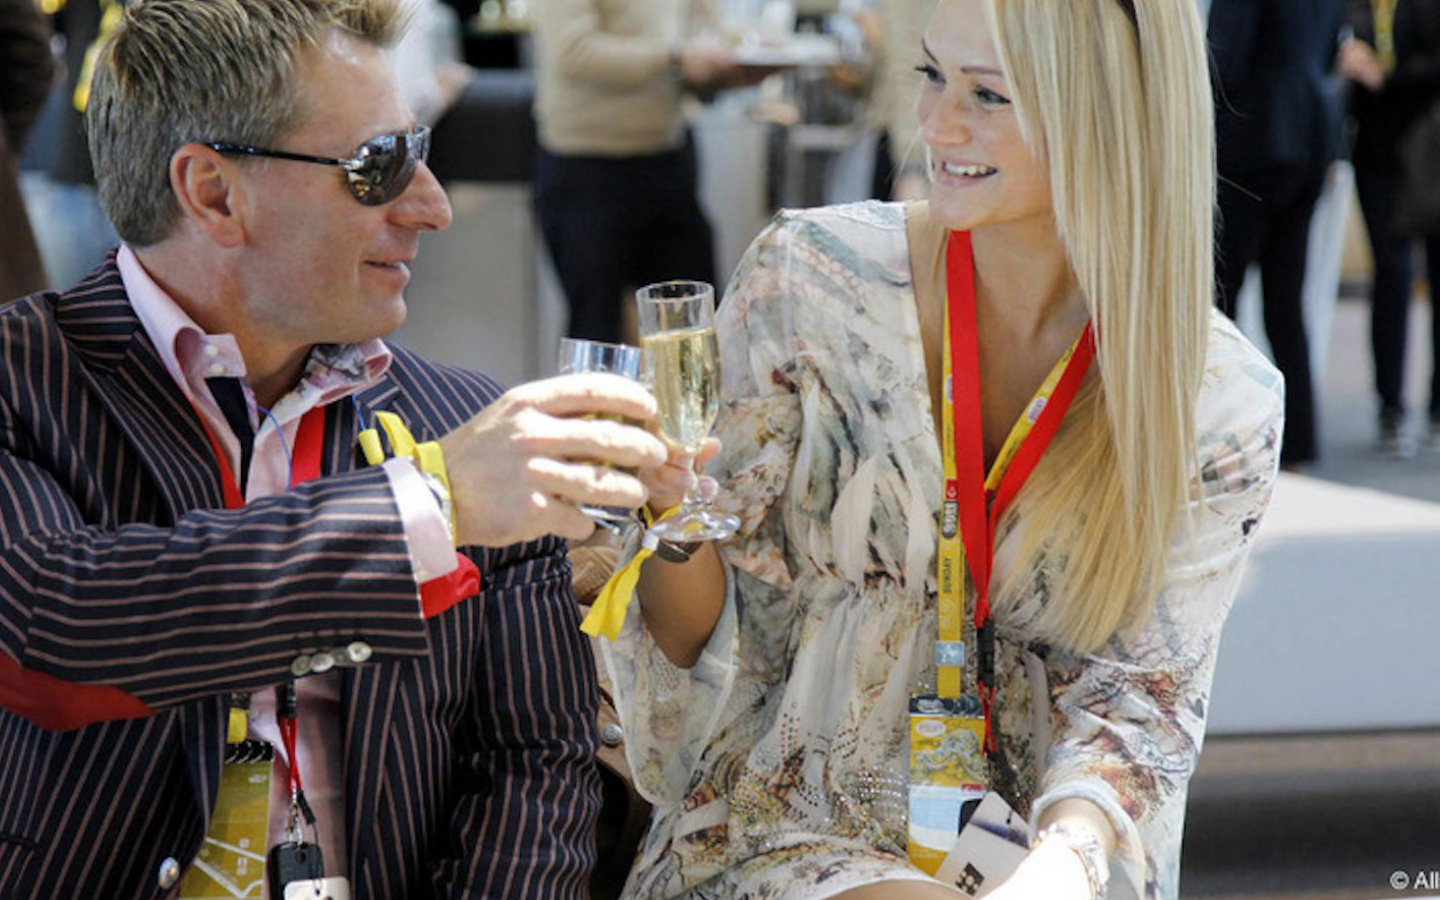 Champagne, of course, at the Monaco Grand Prix